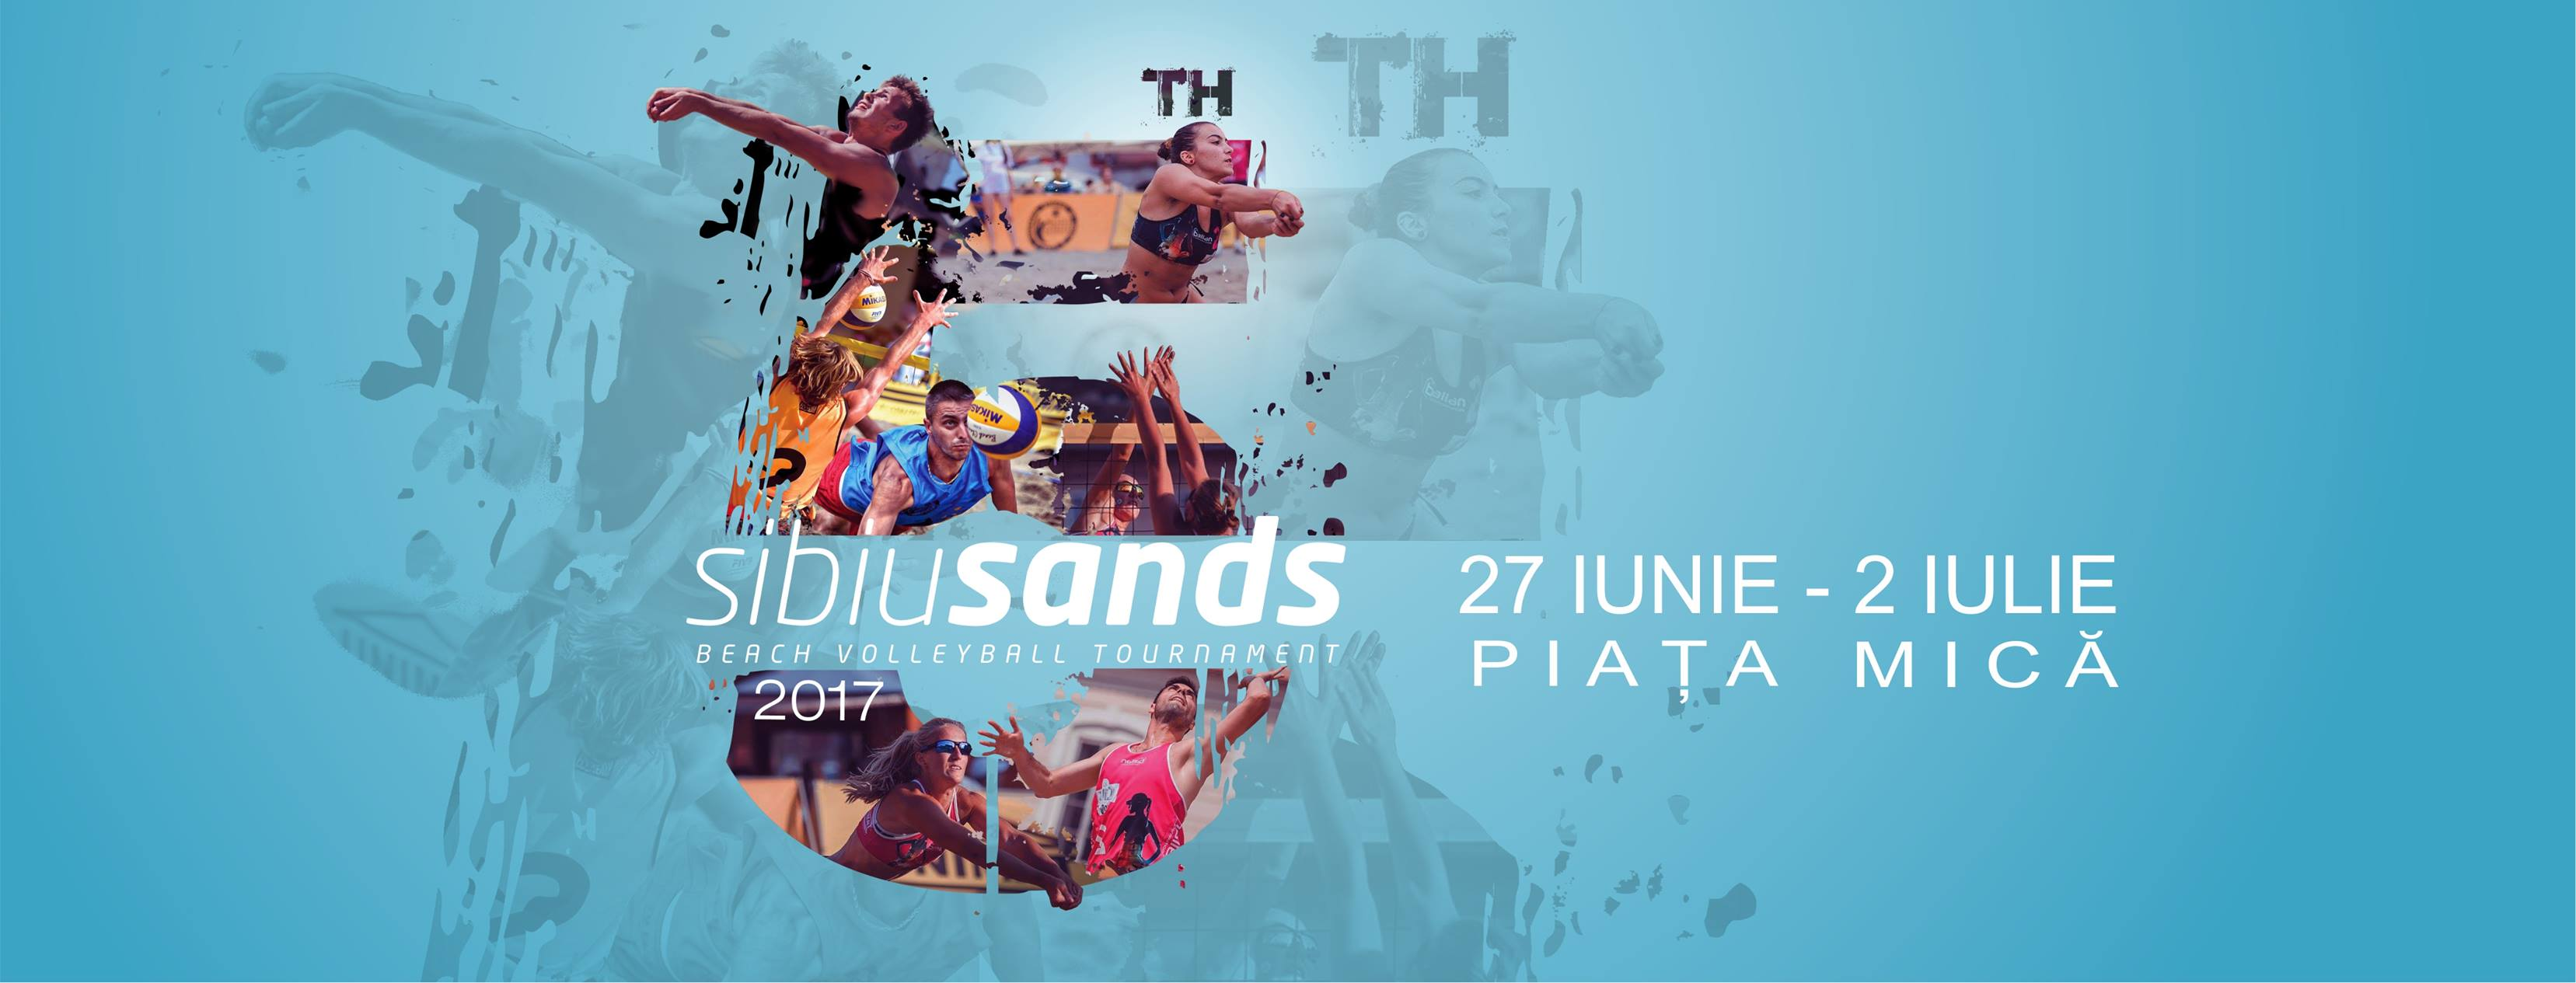 Sibiu Sands - Beach Volleyball Tournament